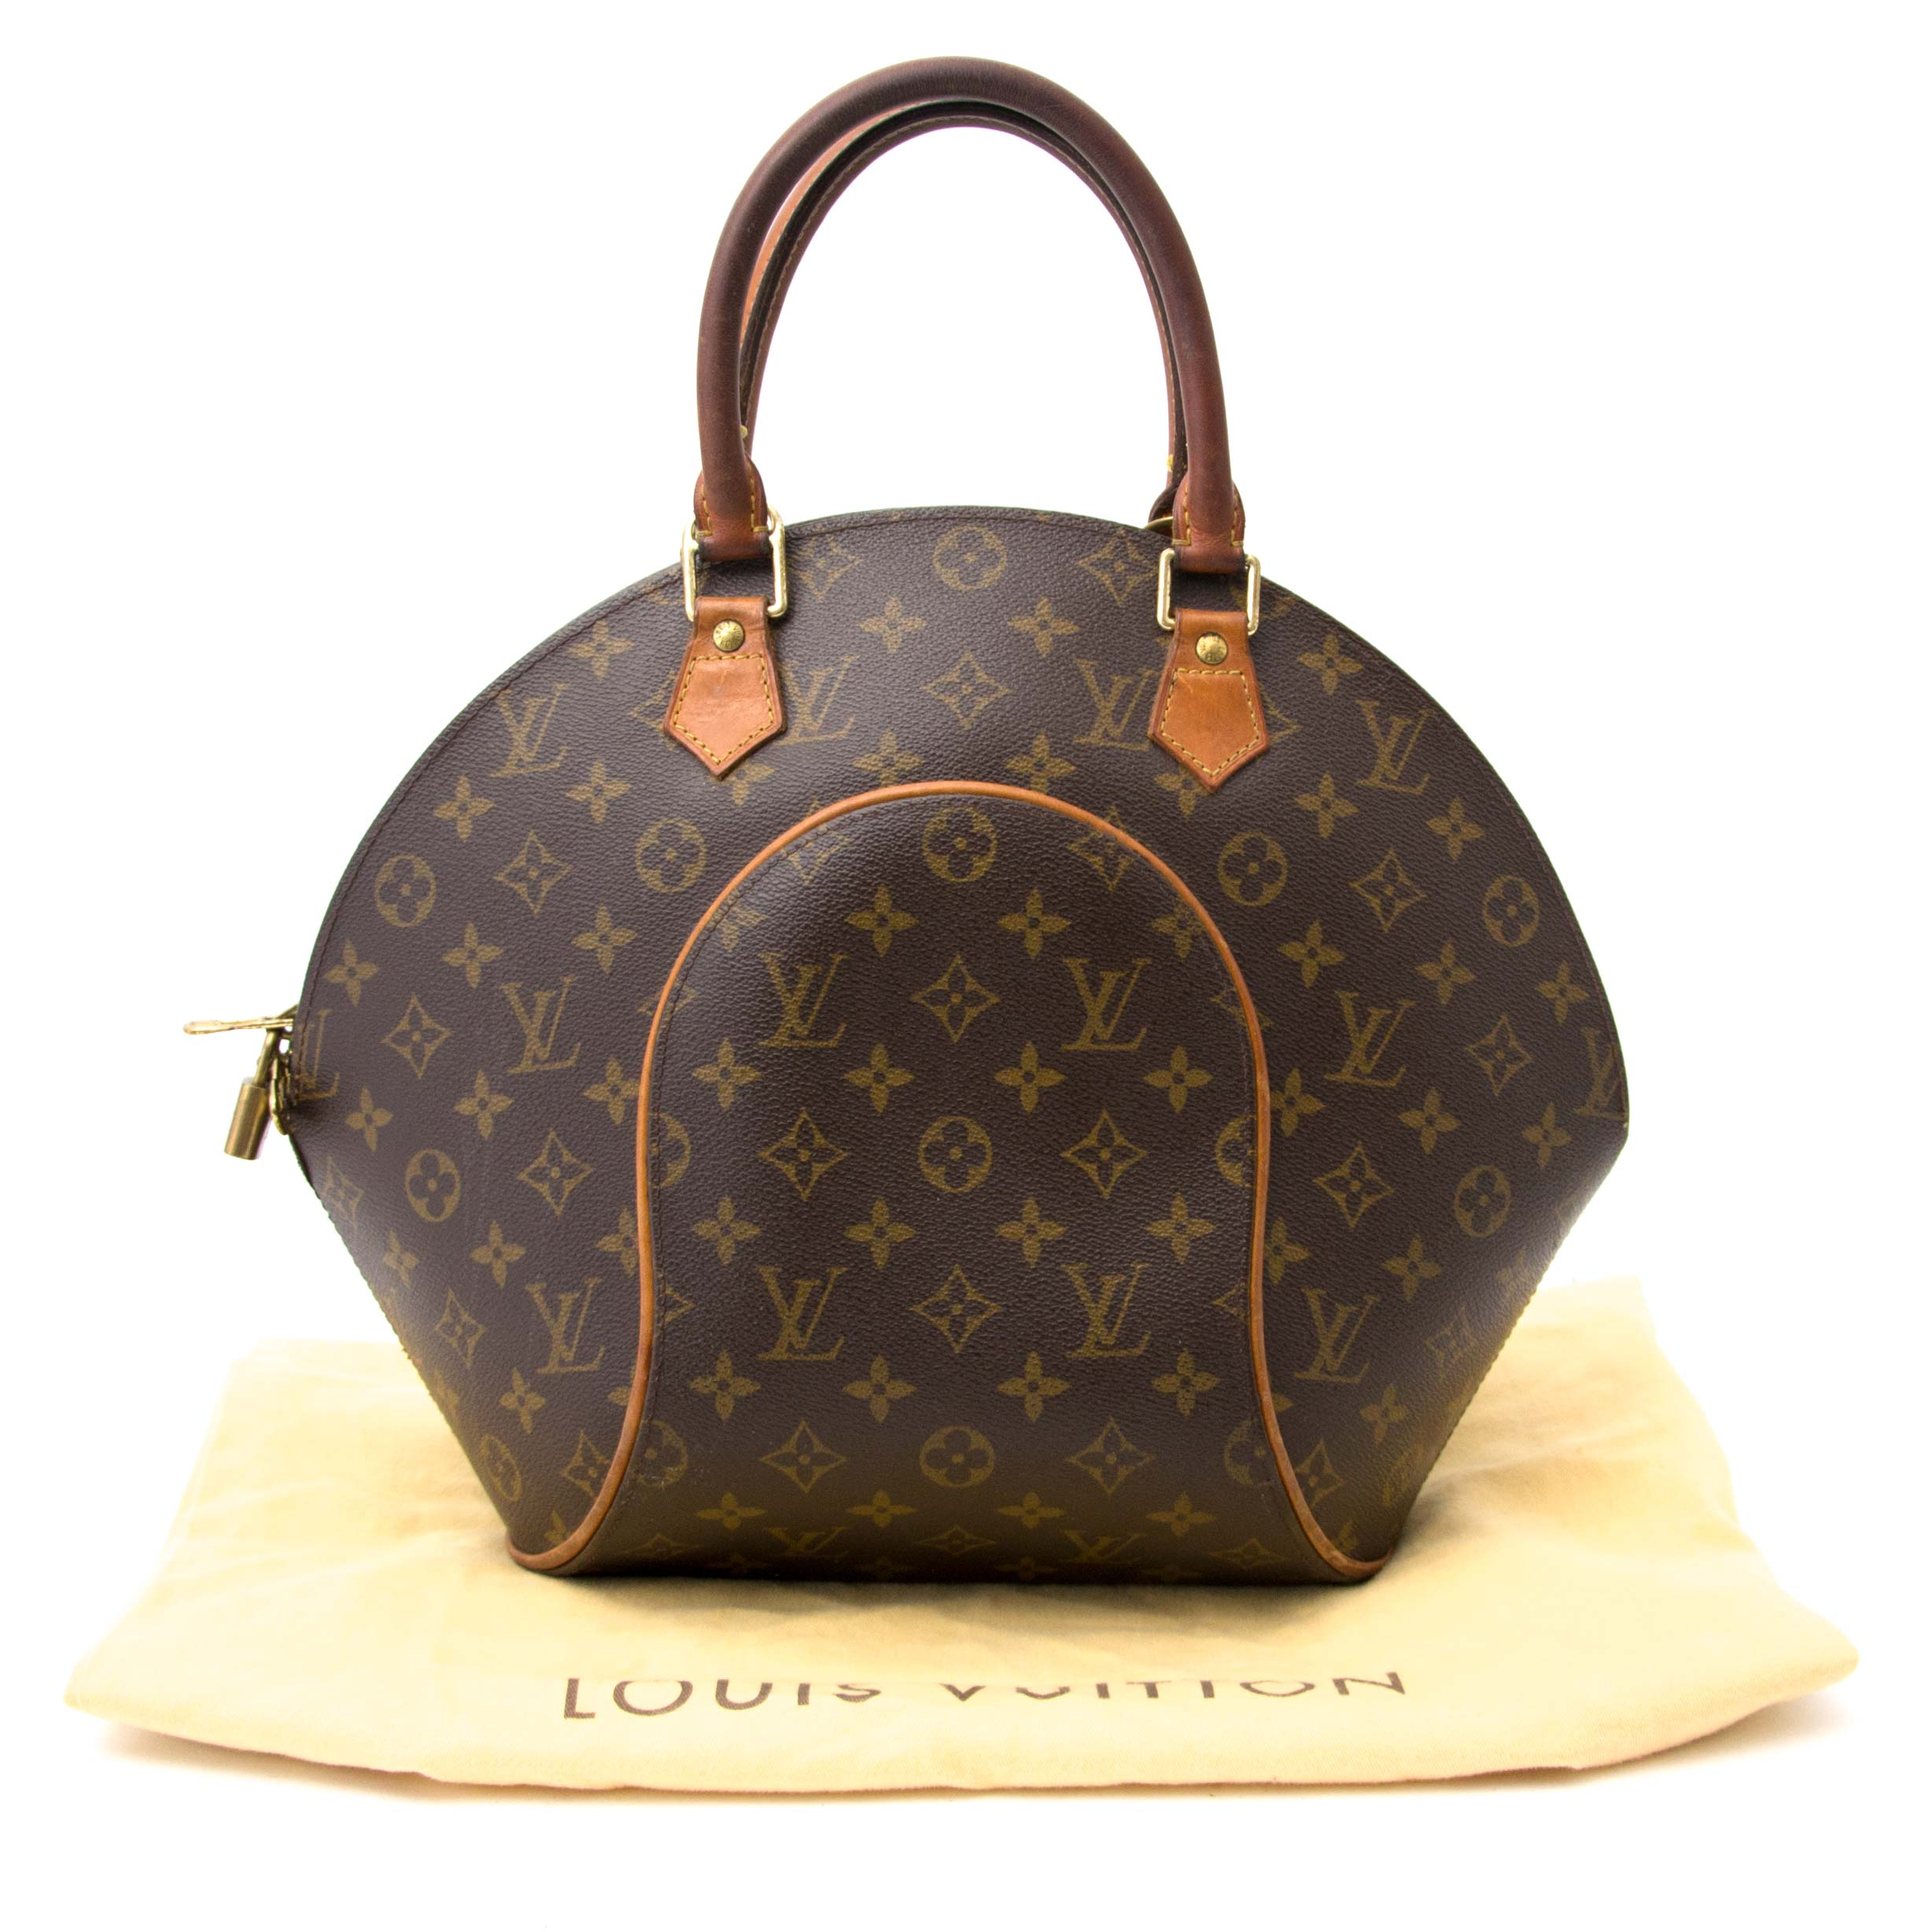 Are you looking for an authentic Louis Vuitton Monogram Ellipse?